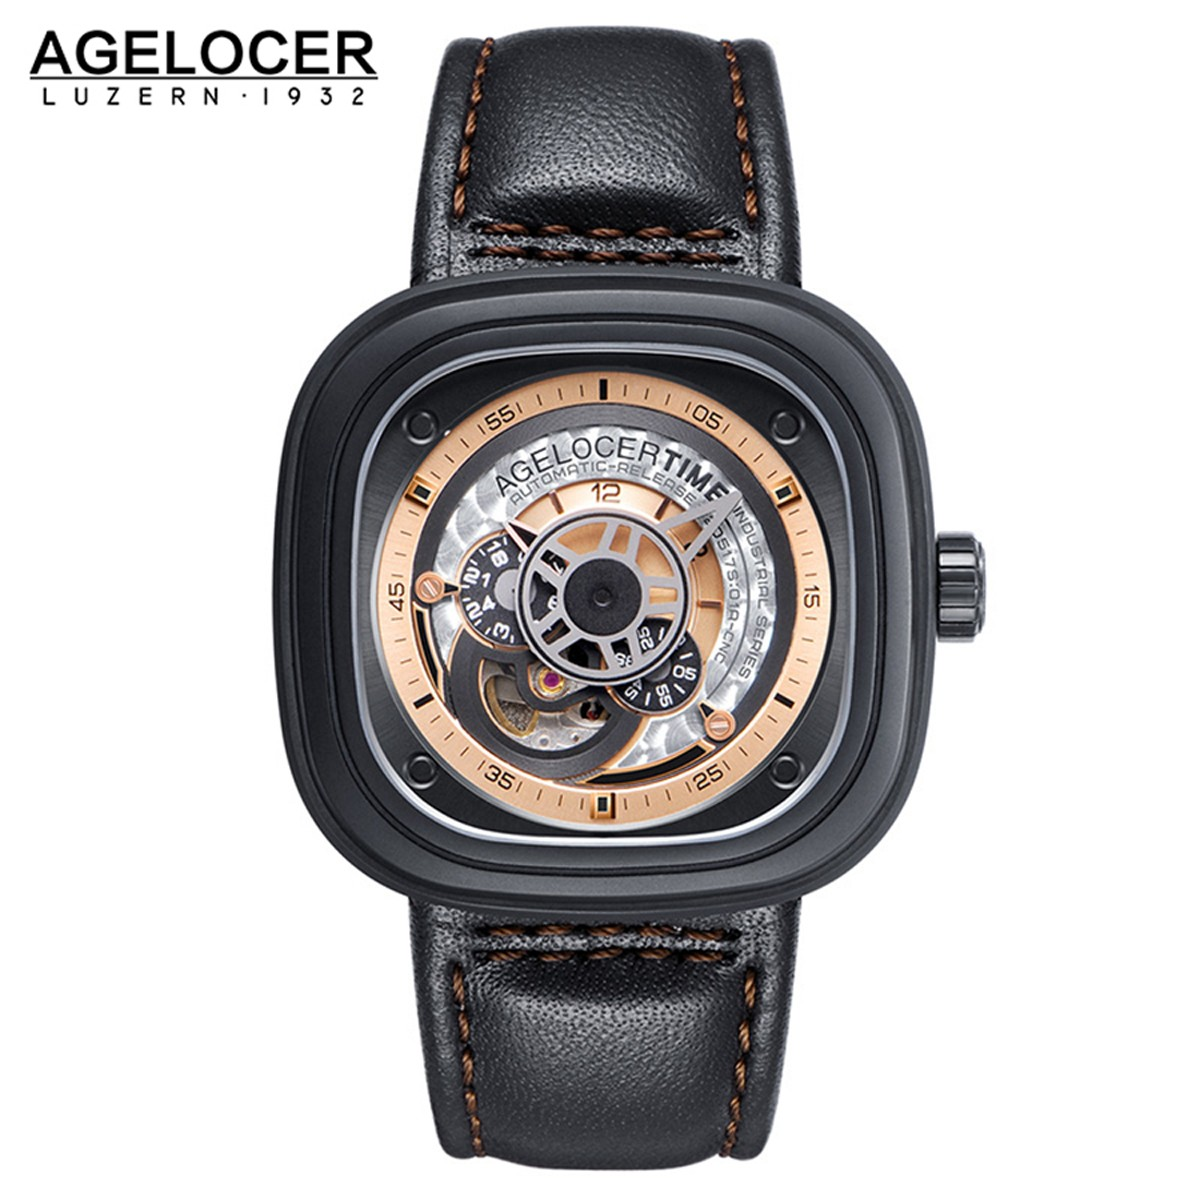 Agelocer Big Bang 47*47.6mm DLC 5002B2